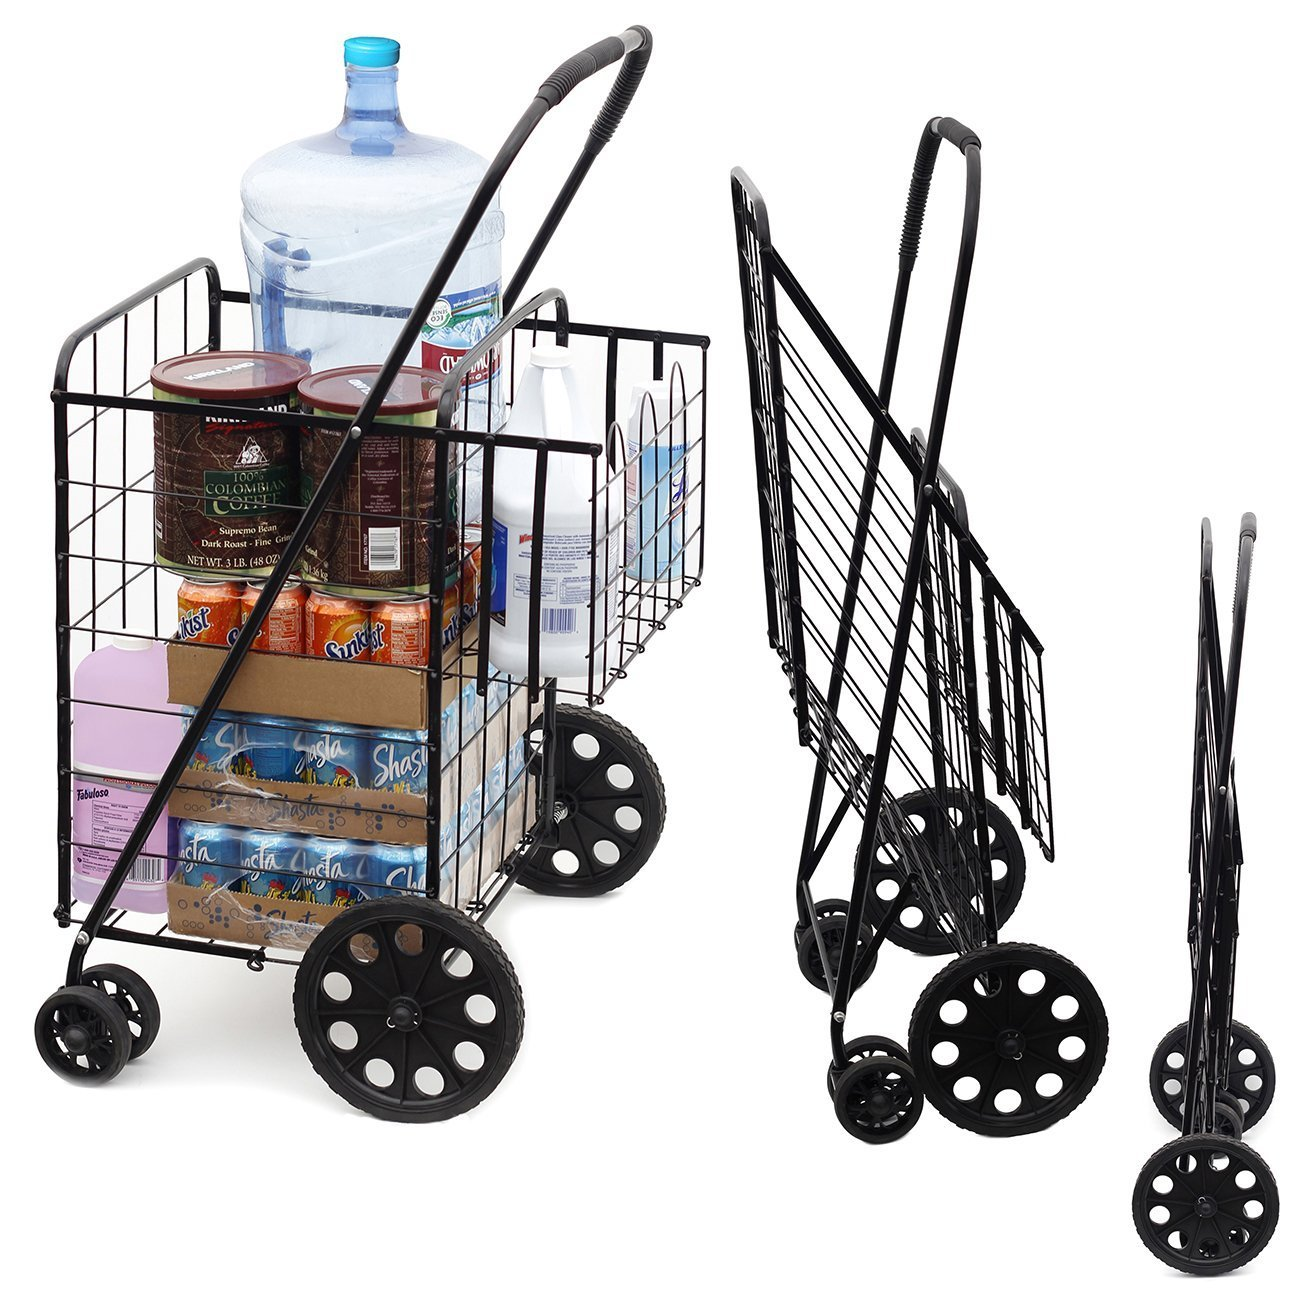 Amazon.com: MOD Complete MDC77037 Double Basket Flat Folding ...